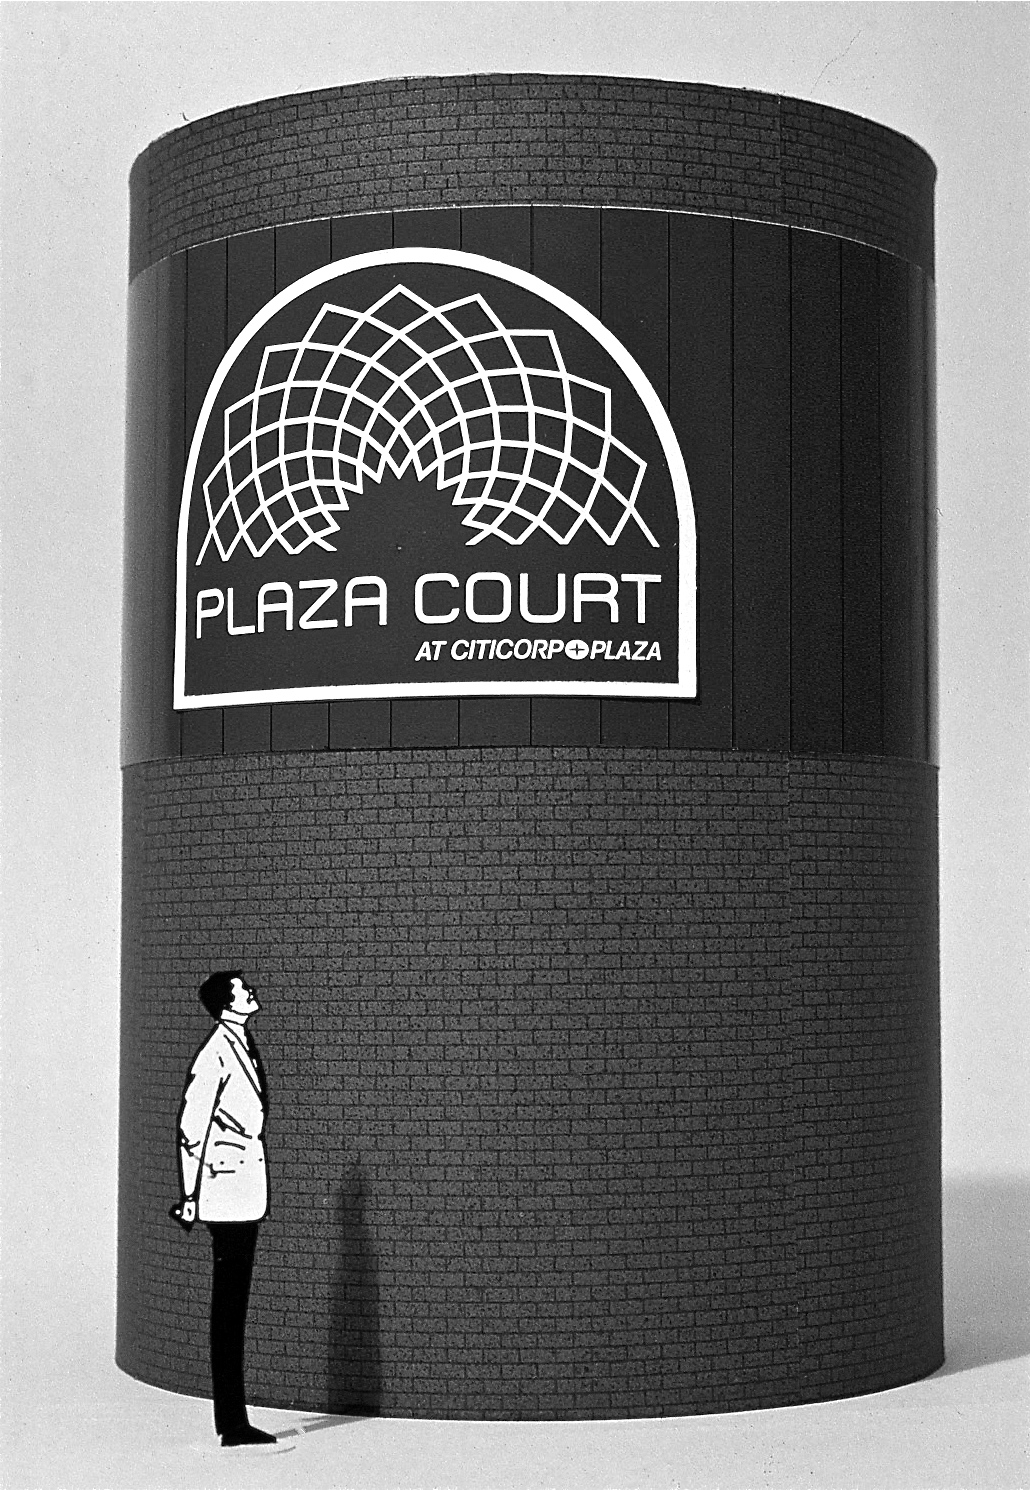 SCale model featuring a man looking up at a large circular brick outdoor ventilation vent with the Plaza Court logo on it.